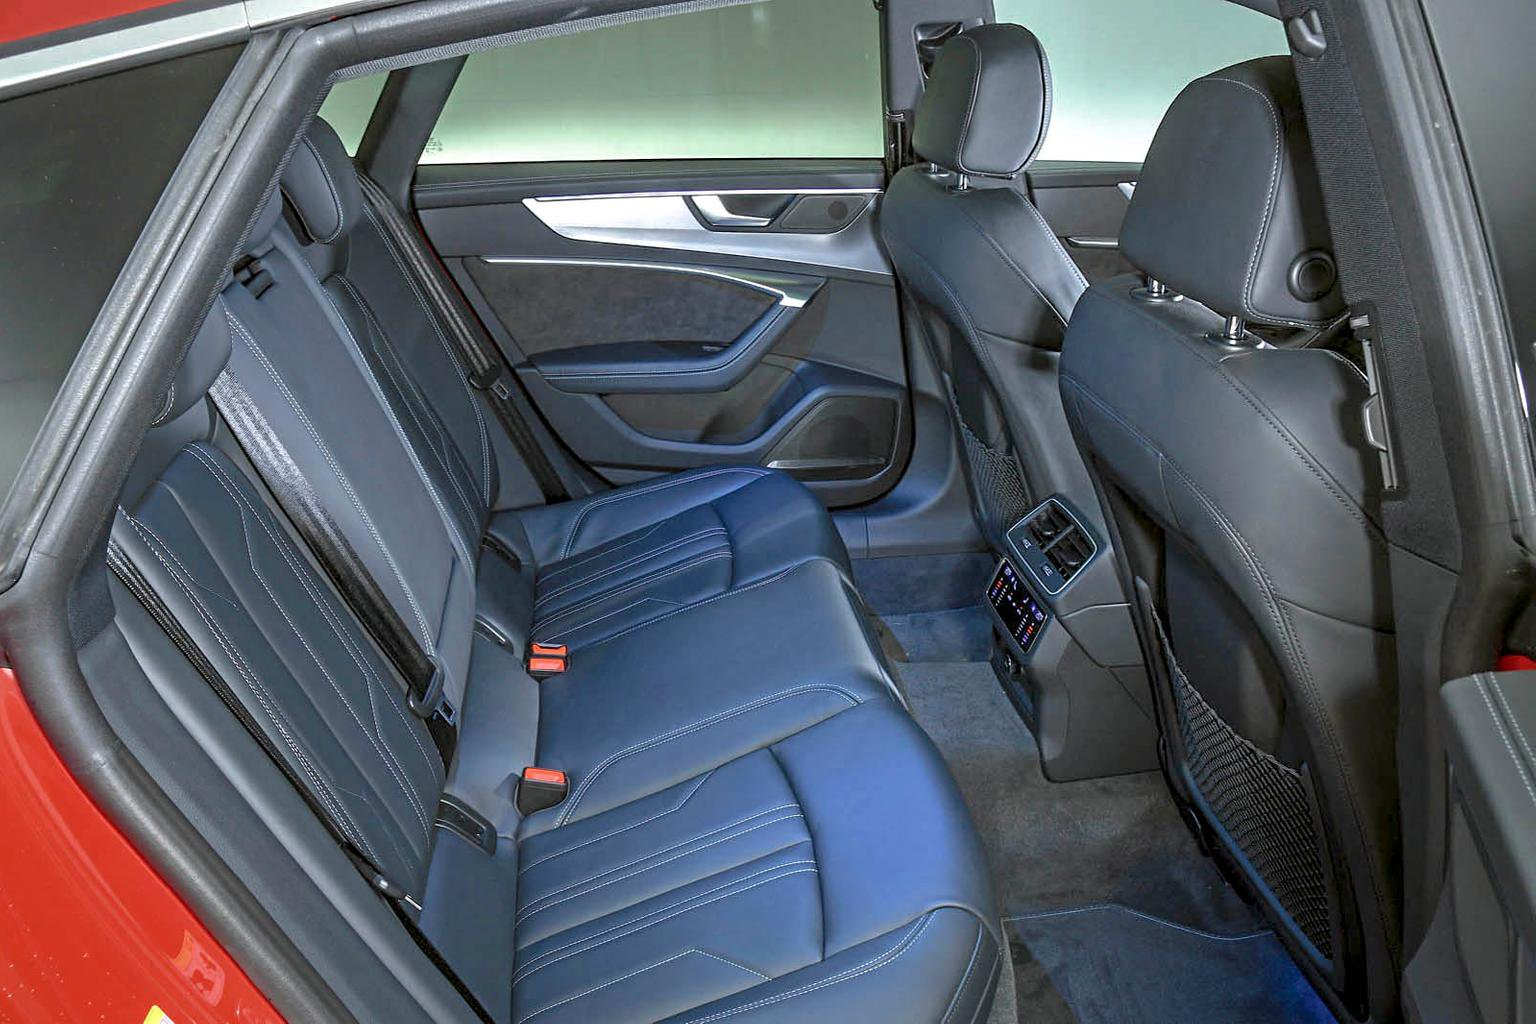 Audi A7 Boot Space Size Seats What Car